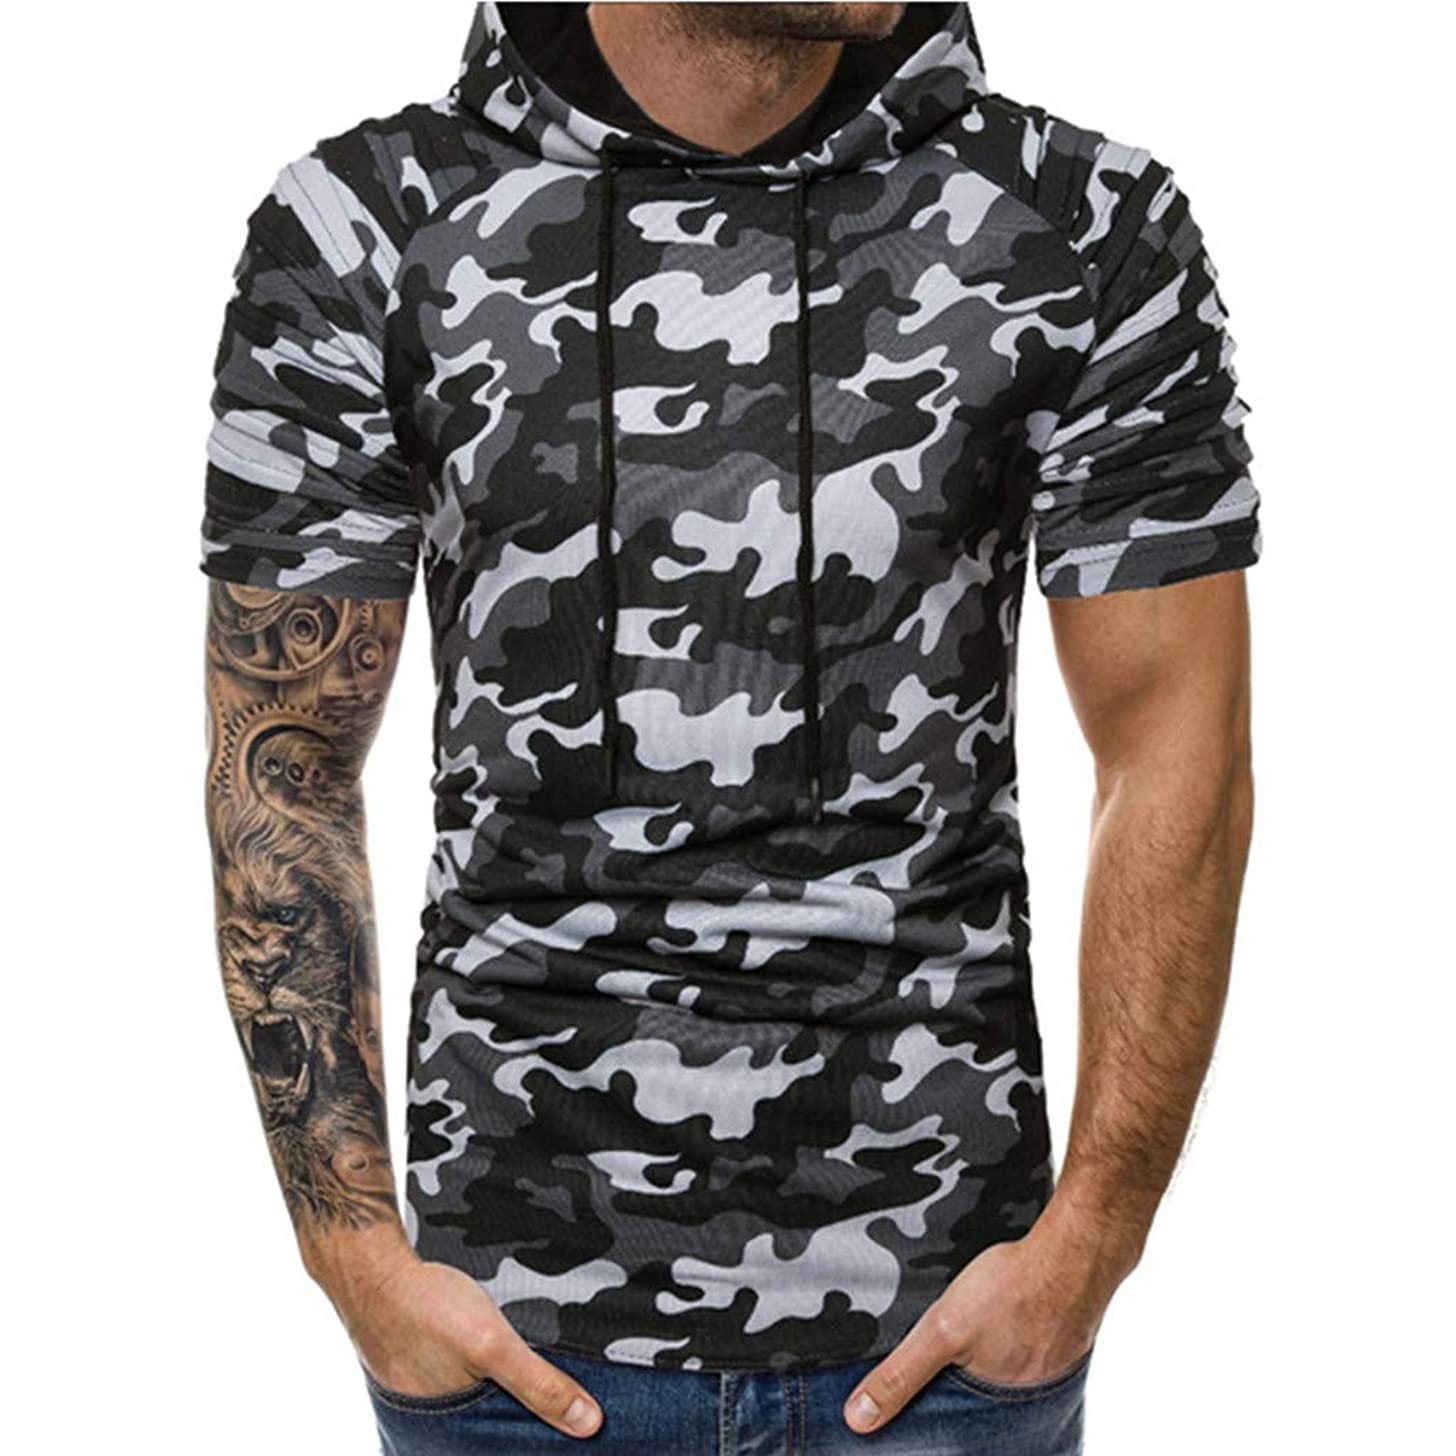 HimTak Men's Hooded Camouflage Pleated Short Sleeve Shirt Camouflage Trendy Stitching Casual Sports Lapel t-Shirt